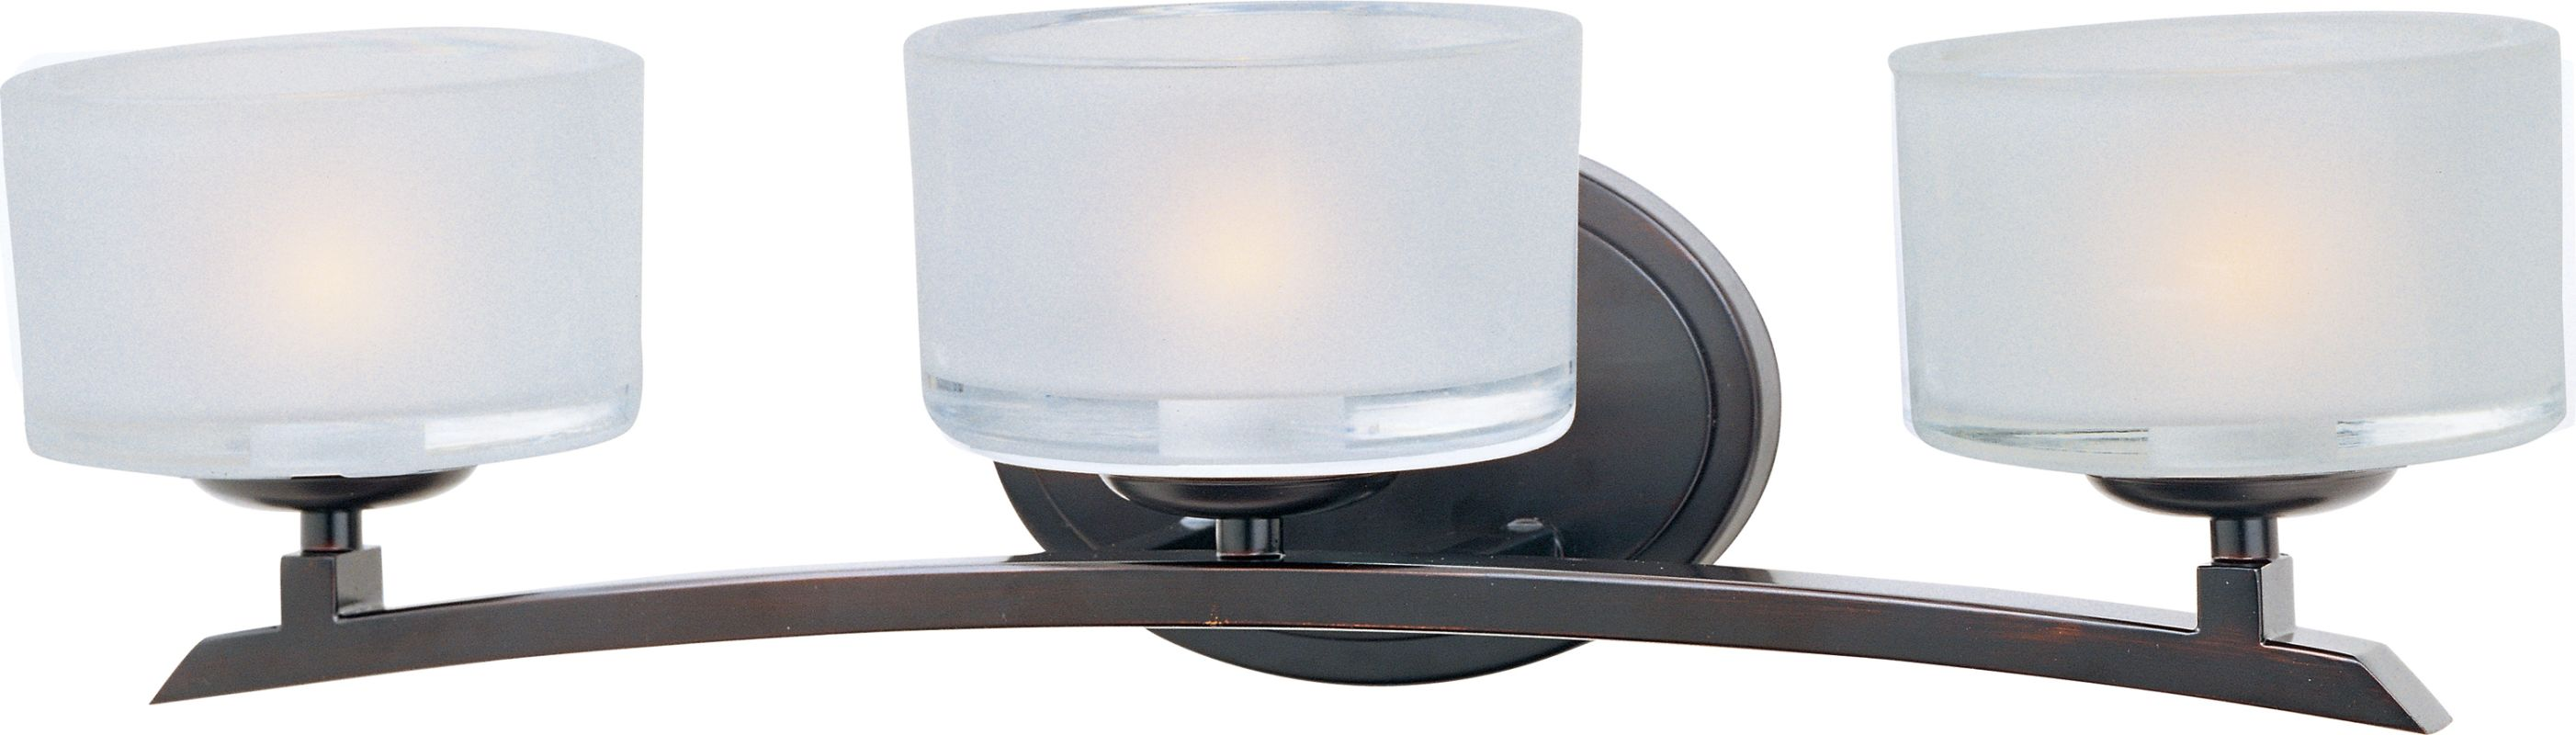 "Maxim 19053 3 Light 20.5"" Wide Bathroom Fixture from the Elle"